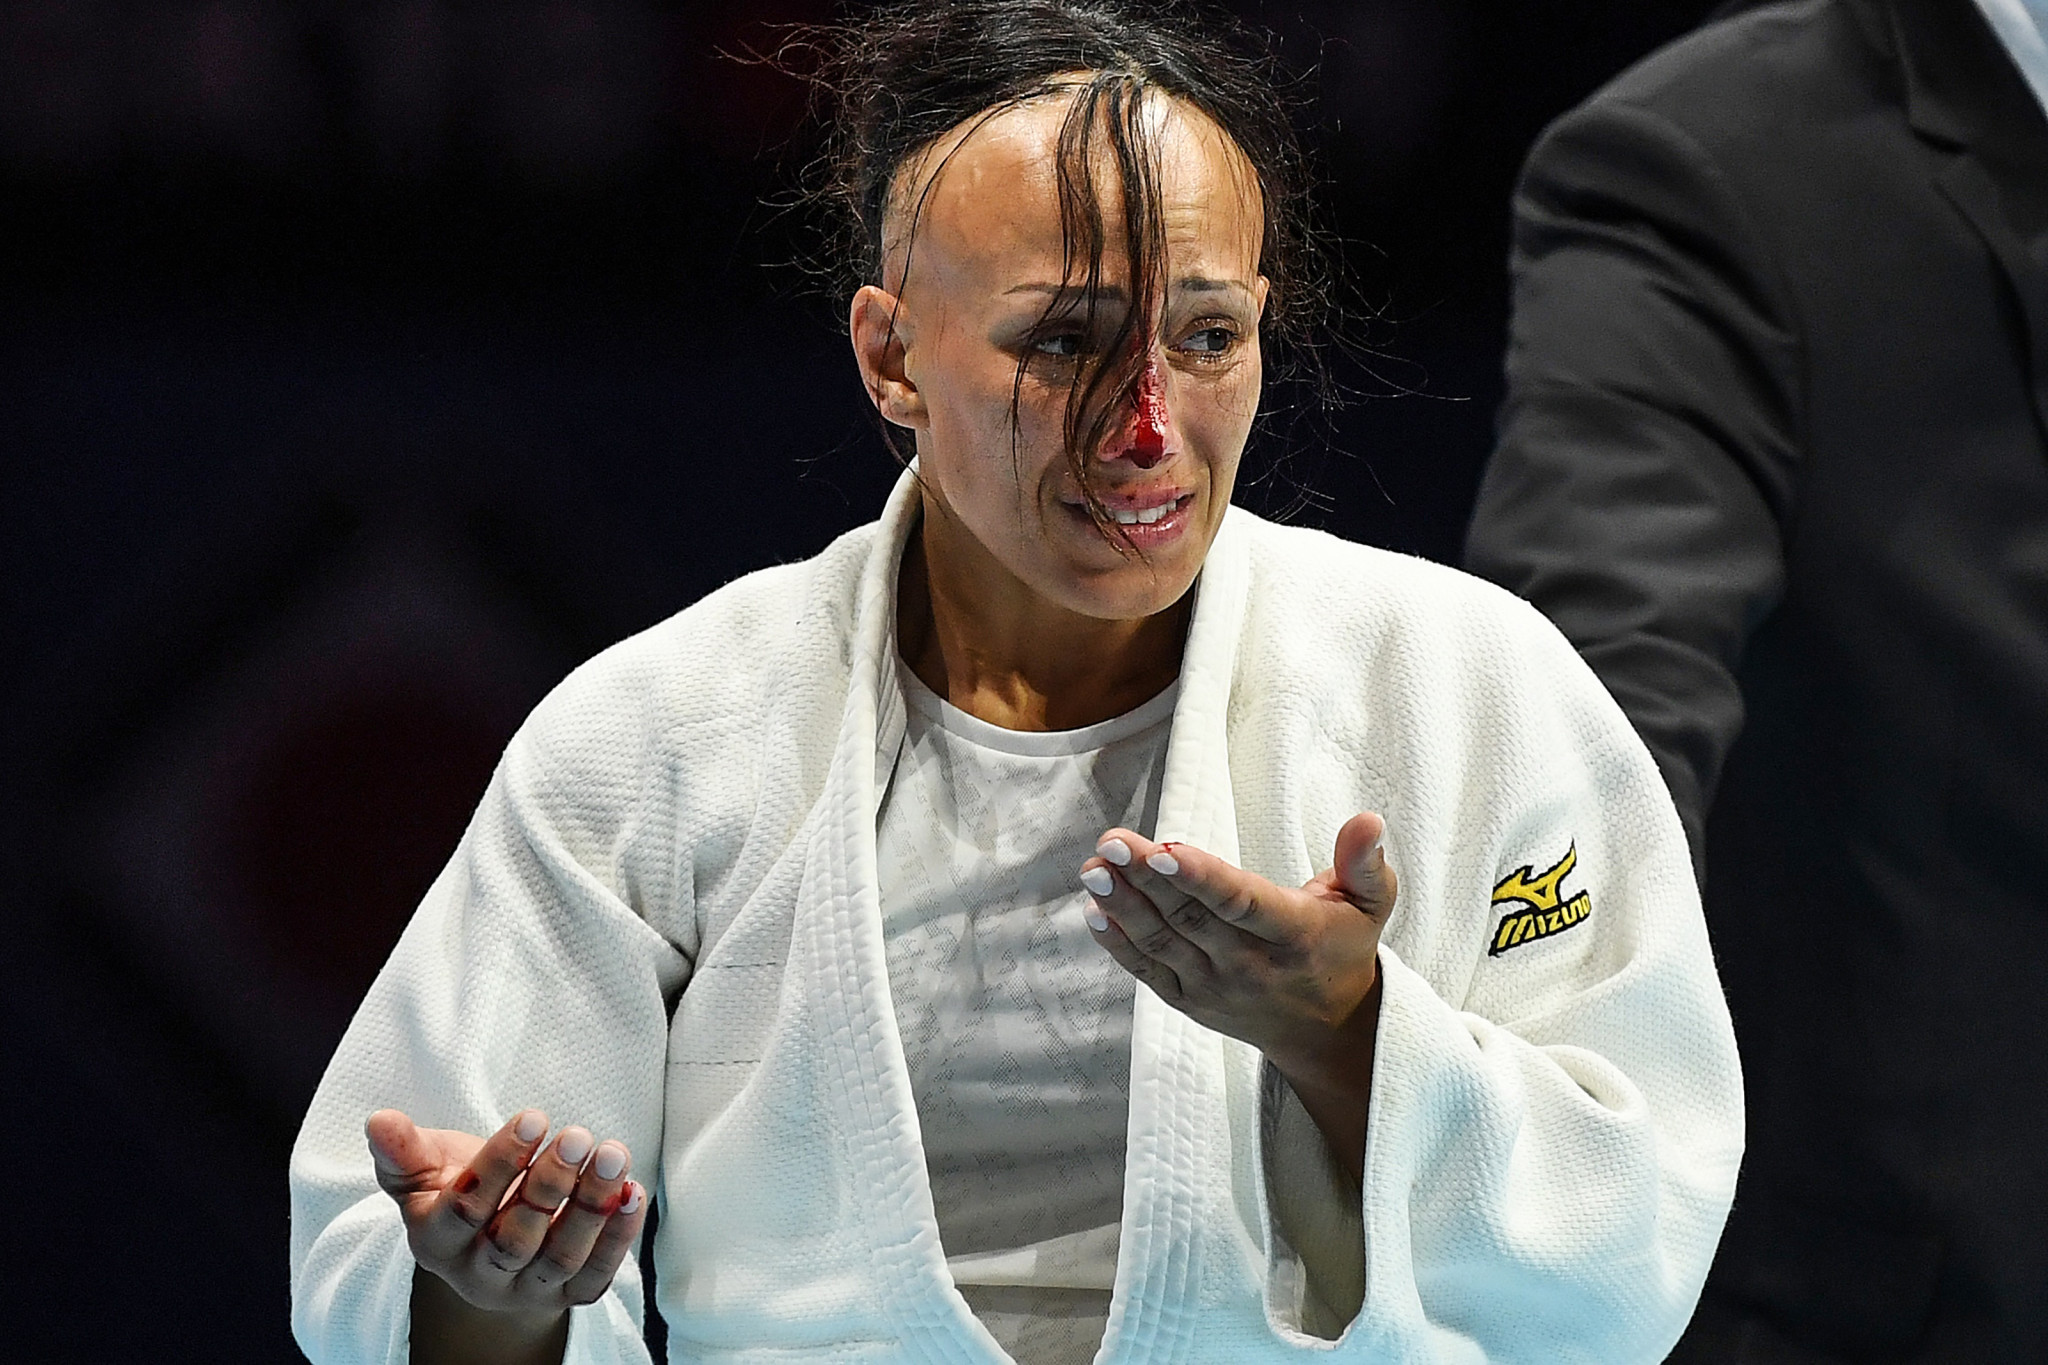 Mejlinda Kelmendi won bronze following a fight with a seven minute injury delay after Joana Ramos, pictured, suffered a broken nose ©Getty Images